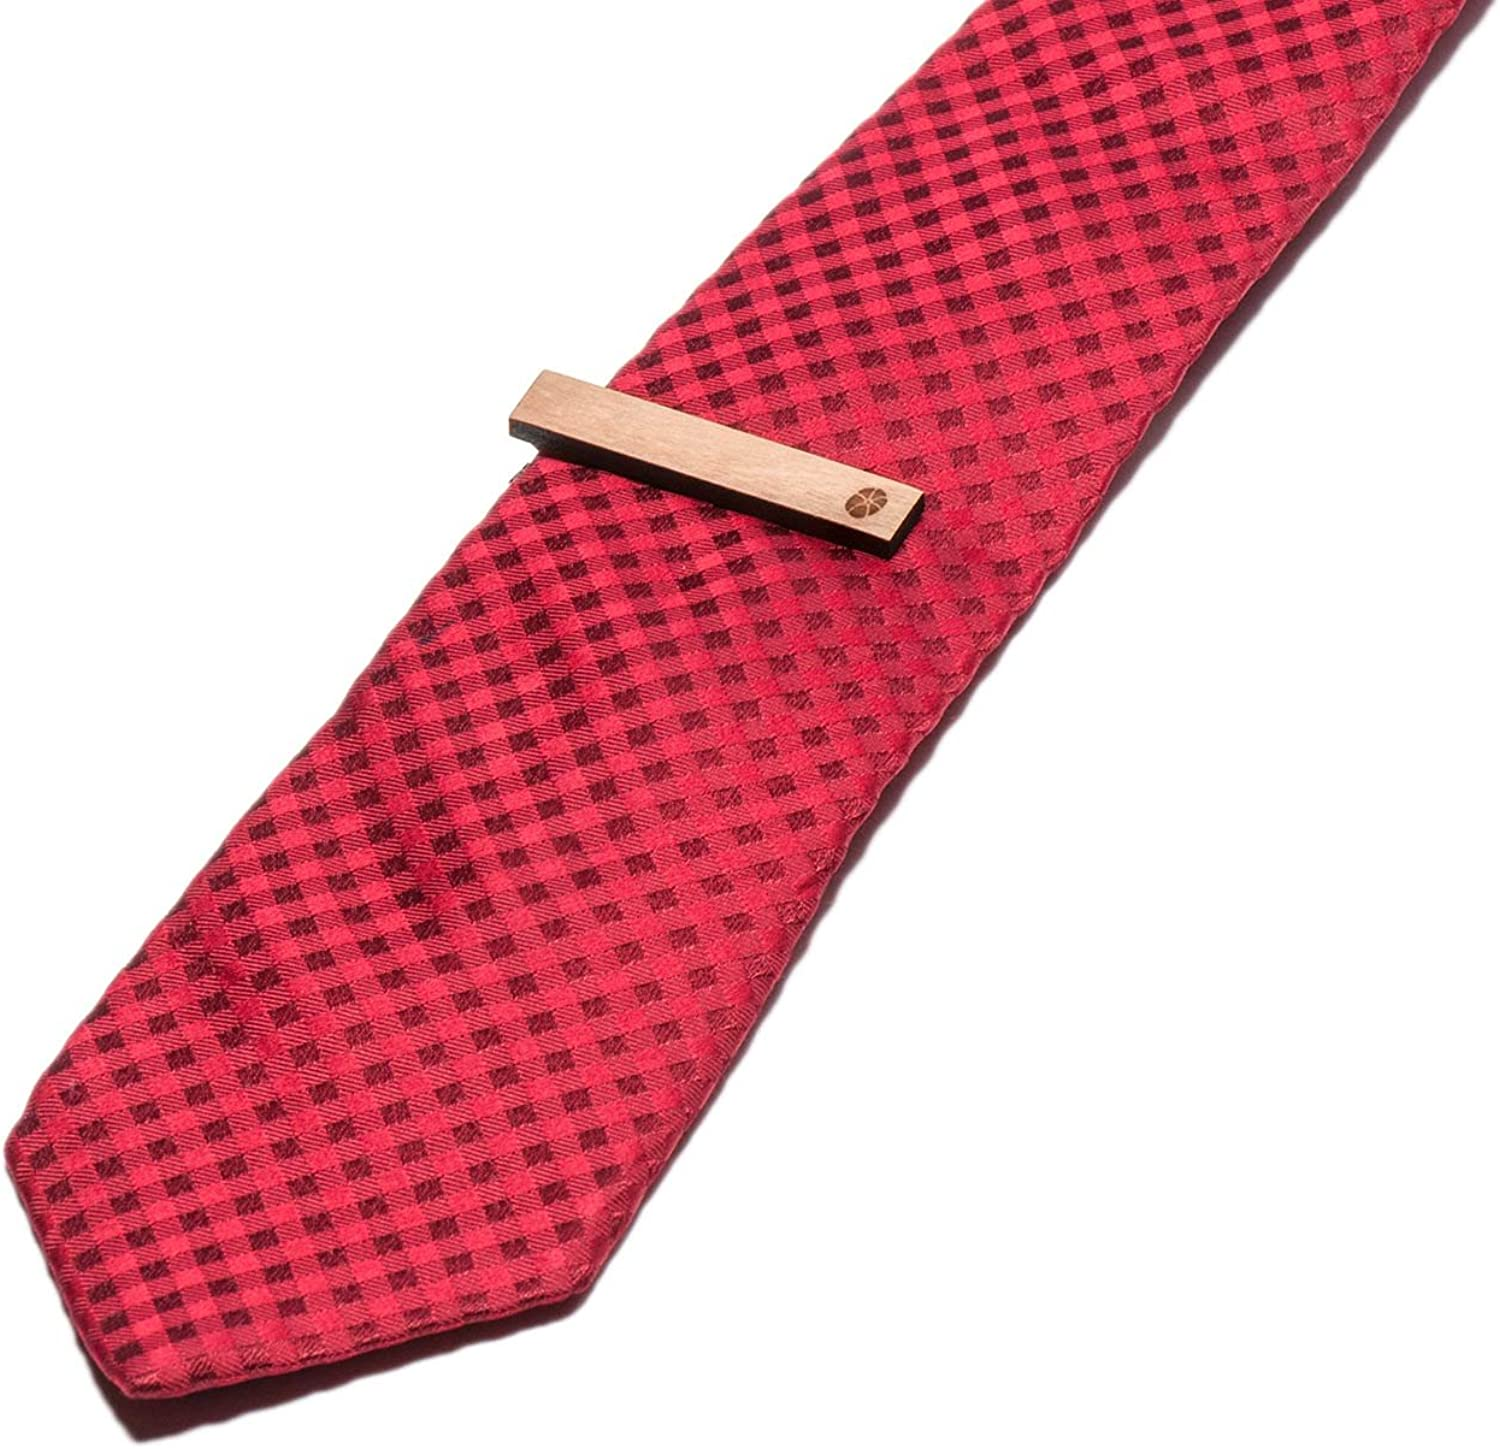 Wooden Accessories Company Wooden Tie Clips with Laser Engraved Blossom Design Cherry Wood Tie Bar Engraved in The USA